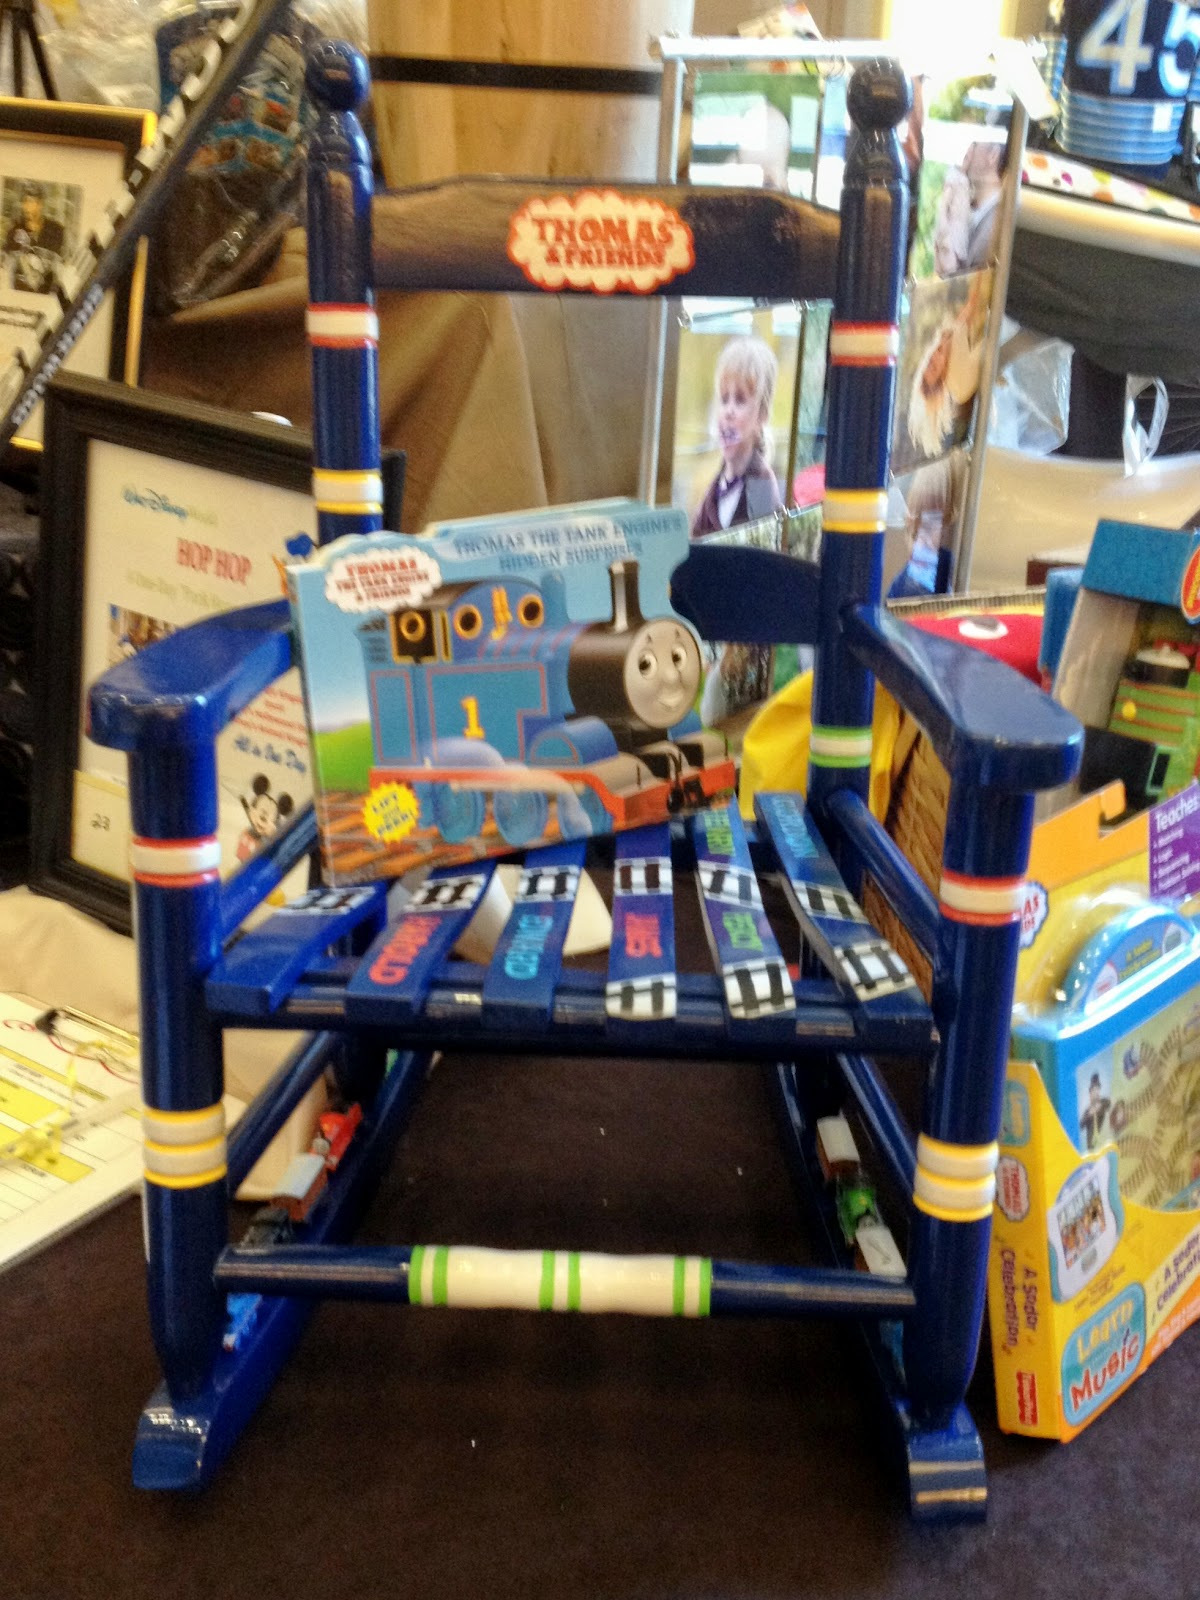 Thomas Train Chair Office Furniture Conference Table And Chairs Larissa Hill Designs Painting For Charity The Tank